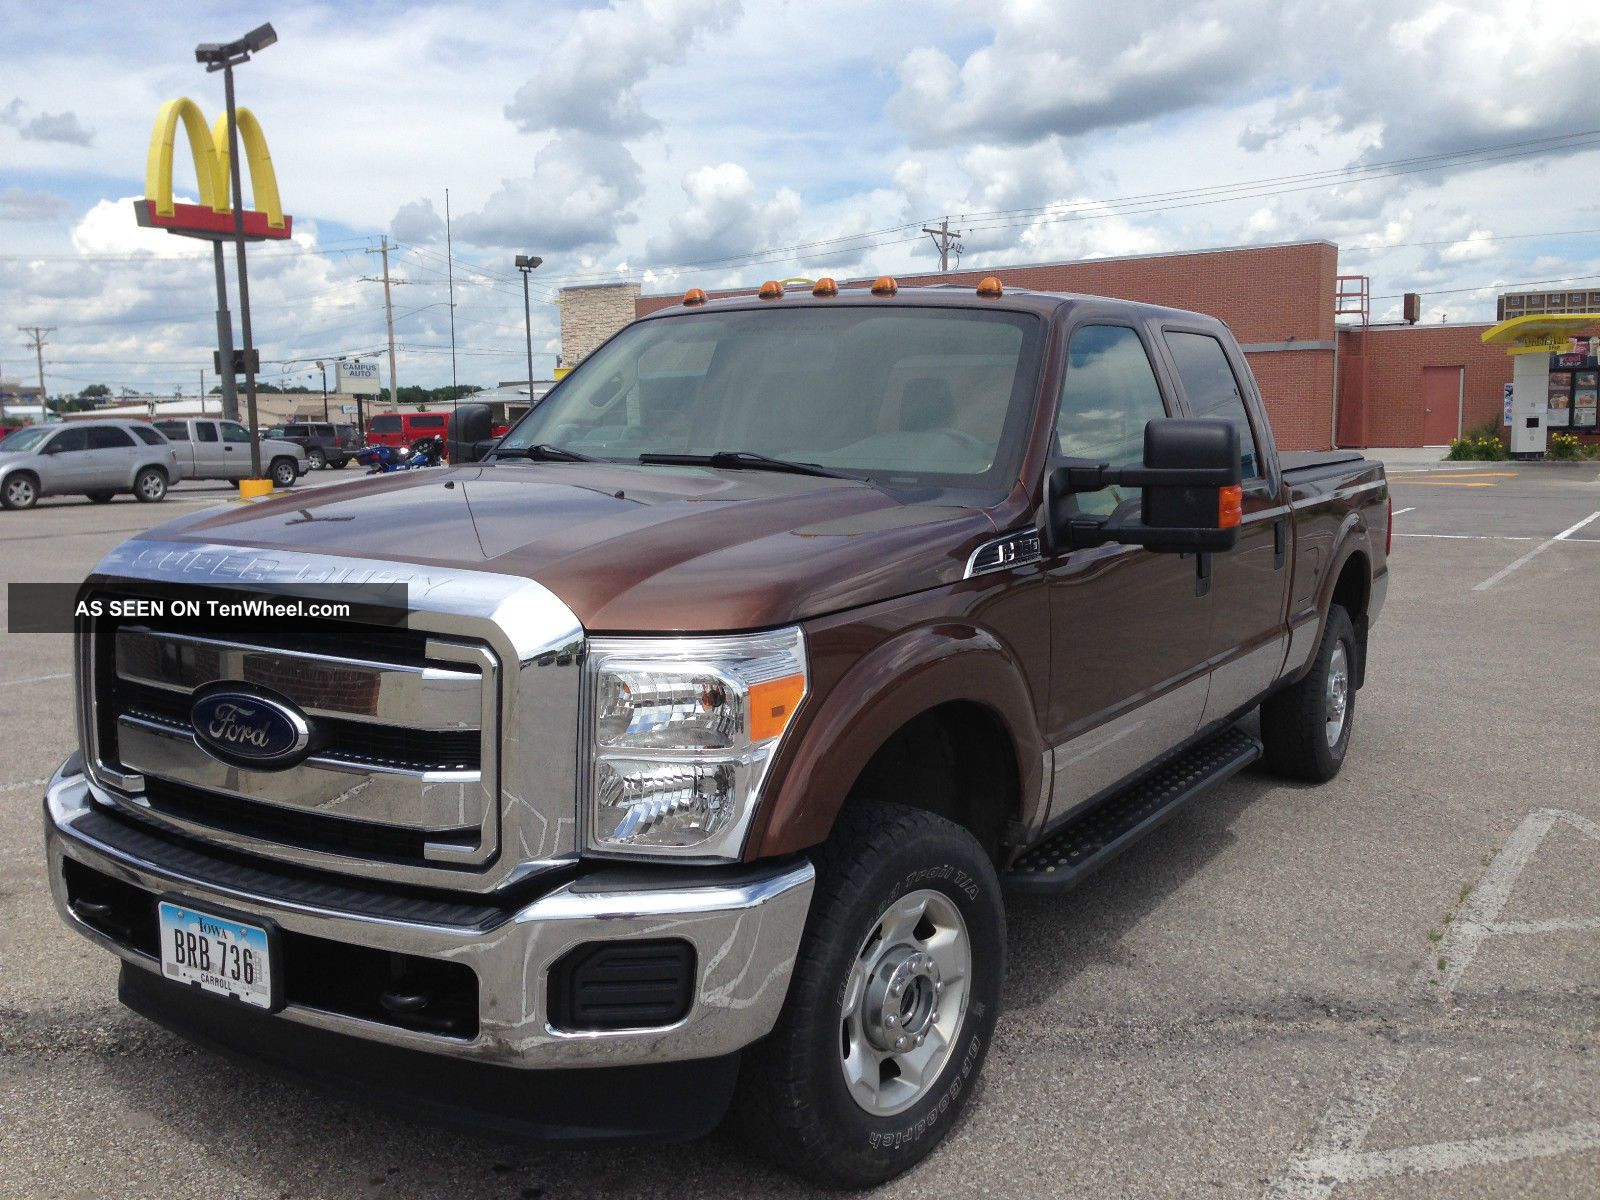 2012 ford f250 xlt 4x4 crew cab 6 2 liter flex fuel. Black Bedroom Furniture Sets. Home Design Ideas